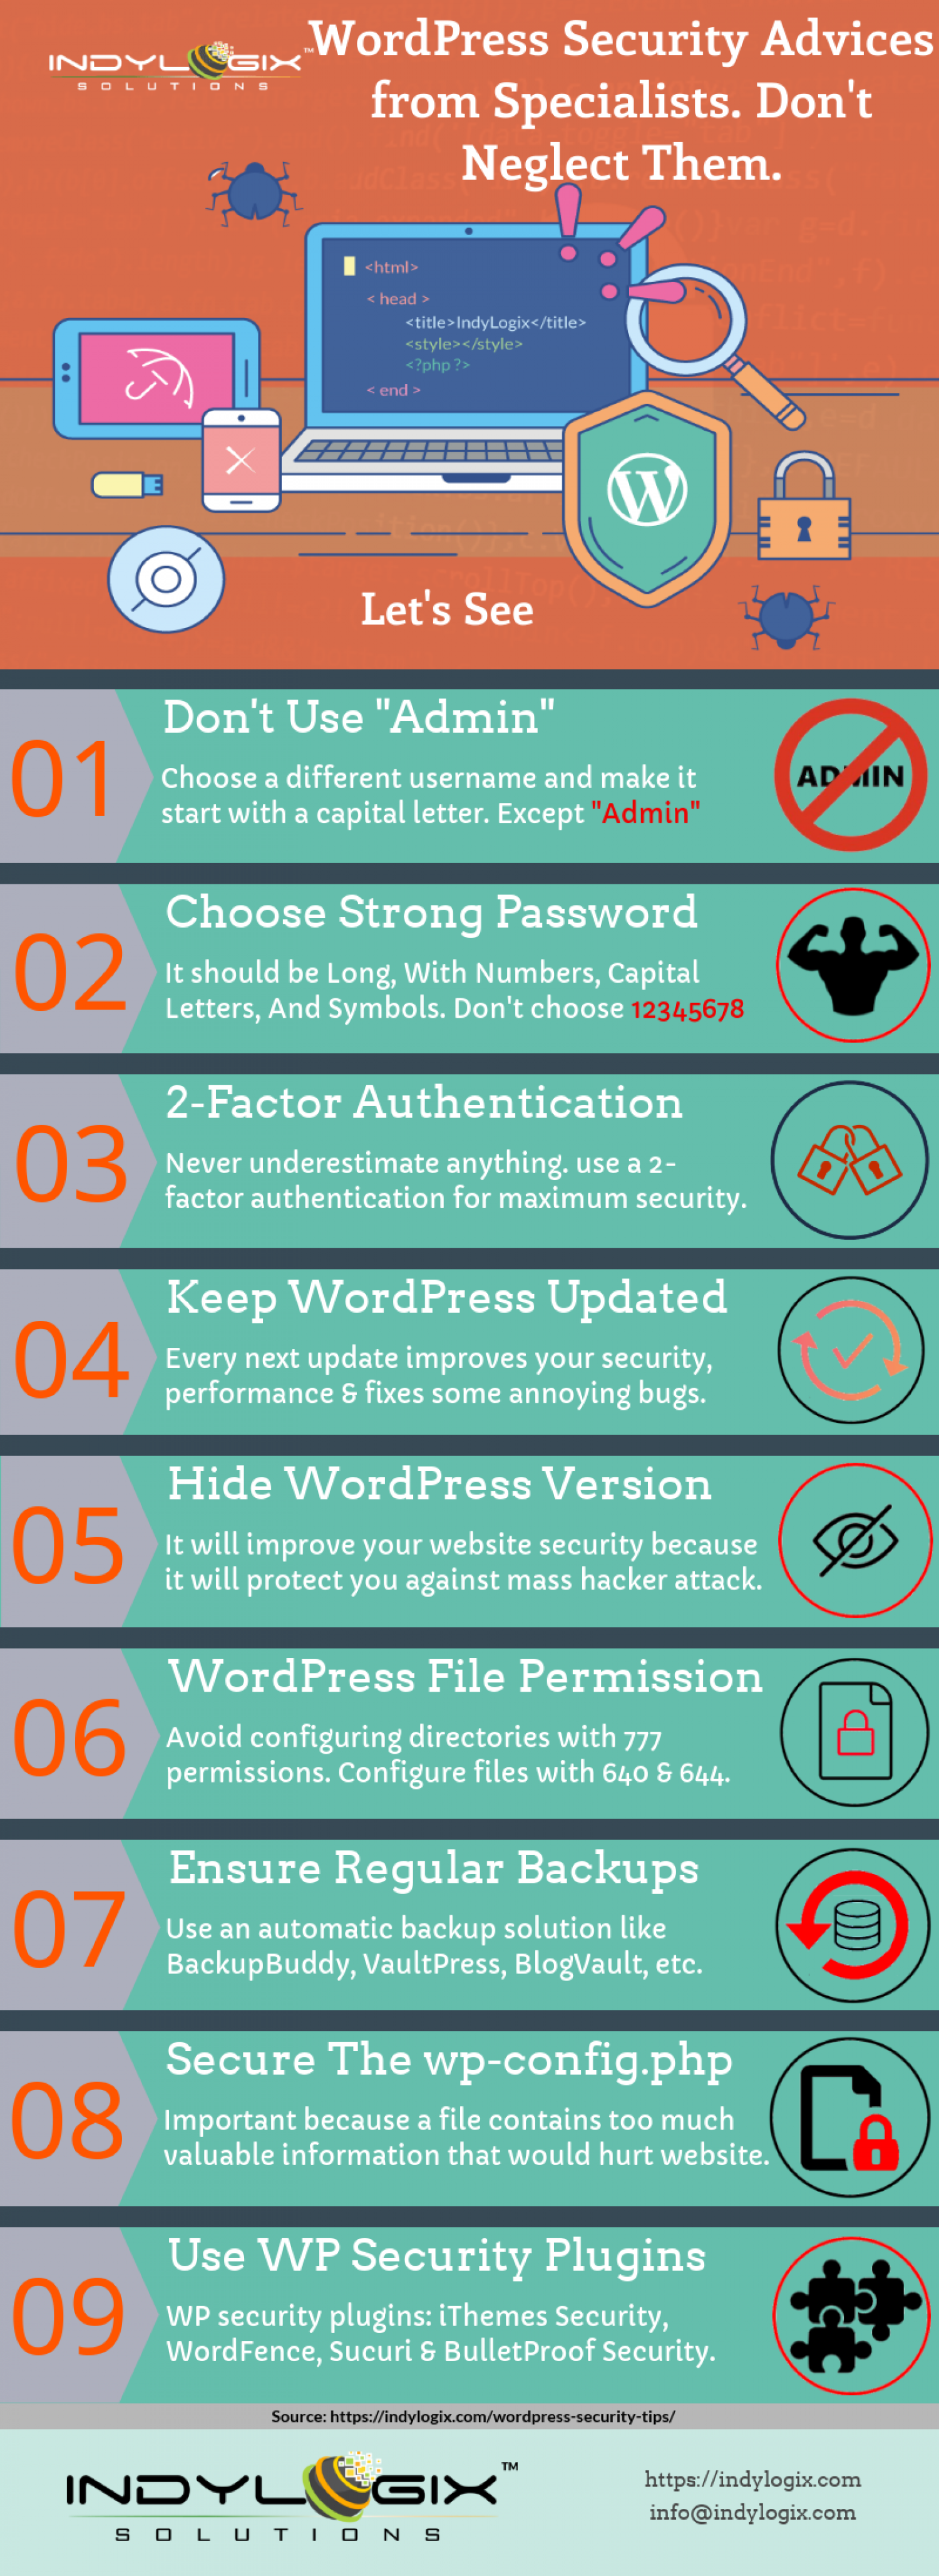 WordPress Security Tips by Experts! Don't Neglect It Any More! Infographic